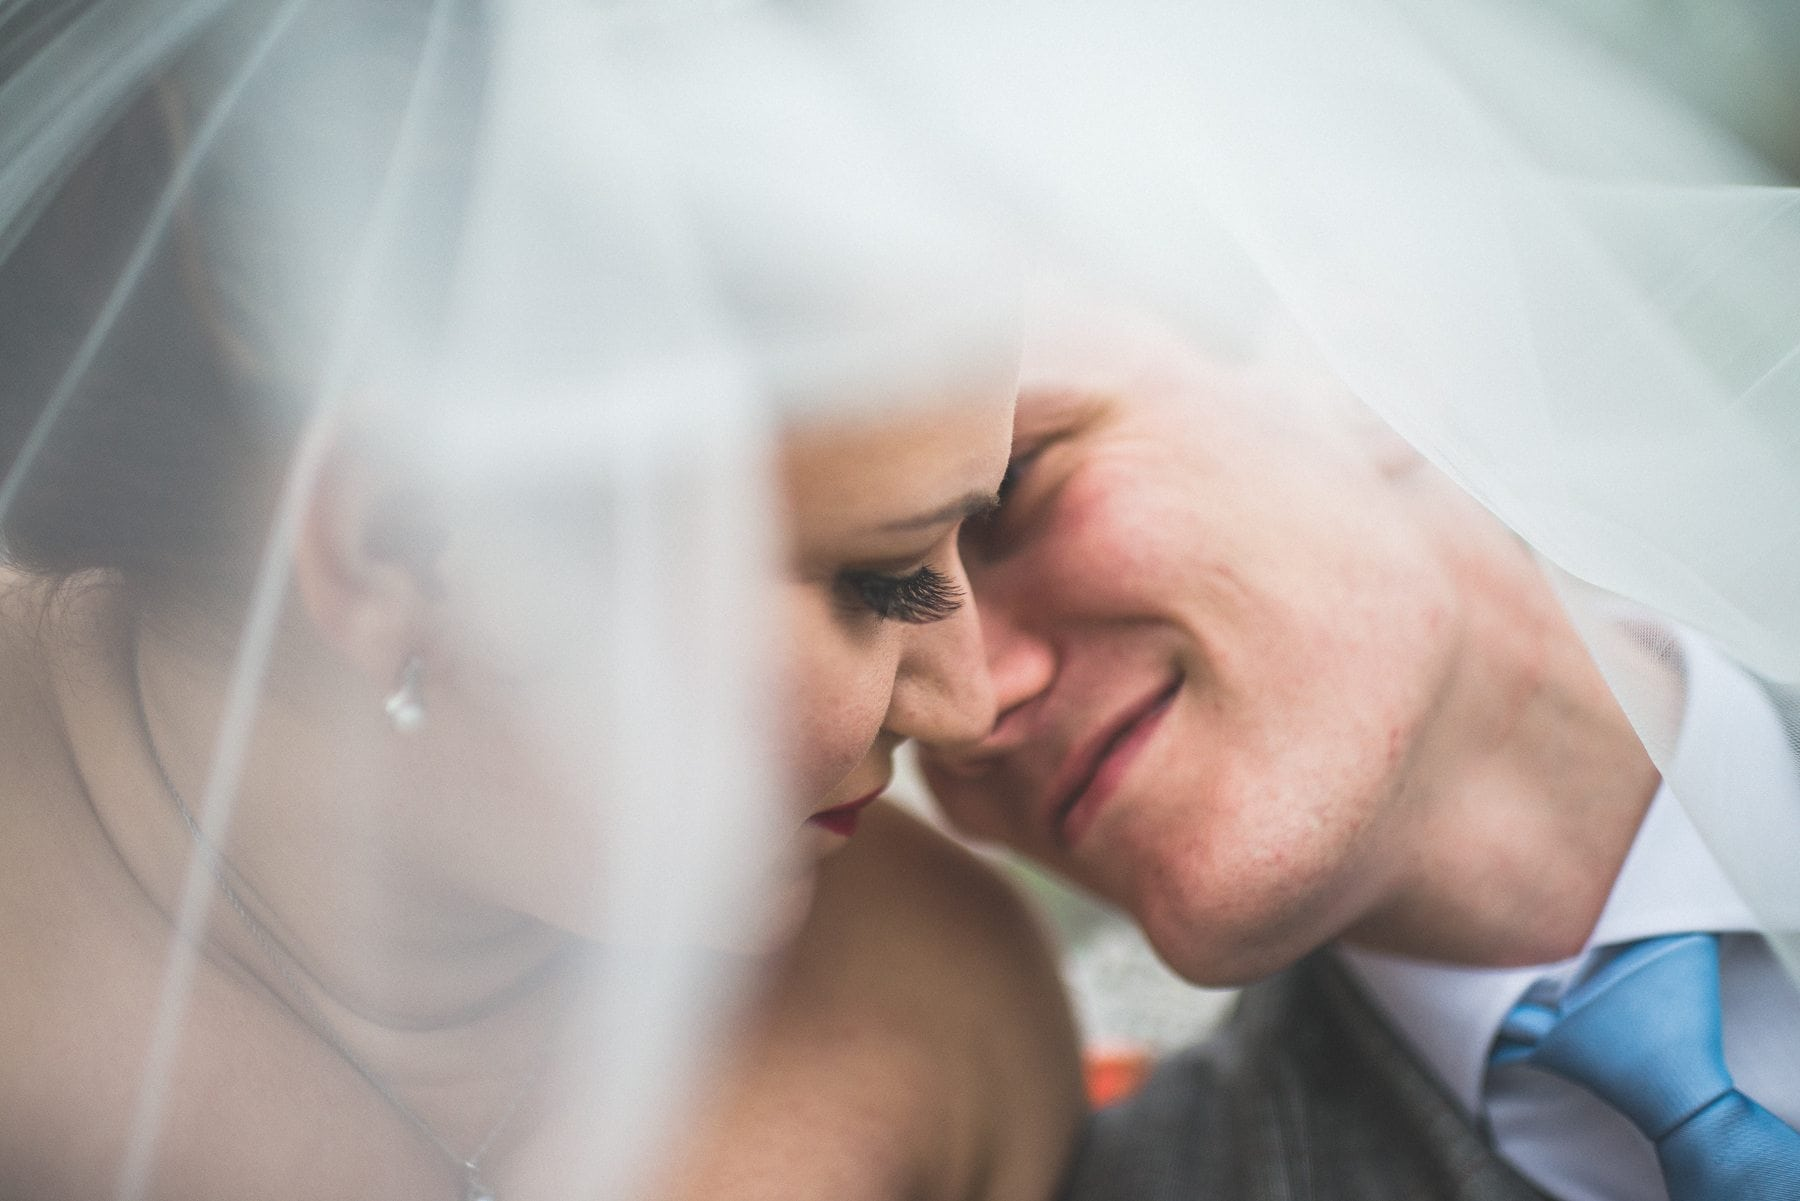 Creative real wedding photography or a bride and groom just about to kiss under the bride's veil